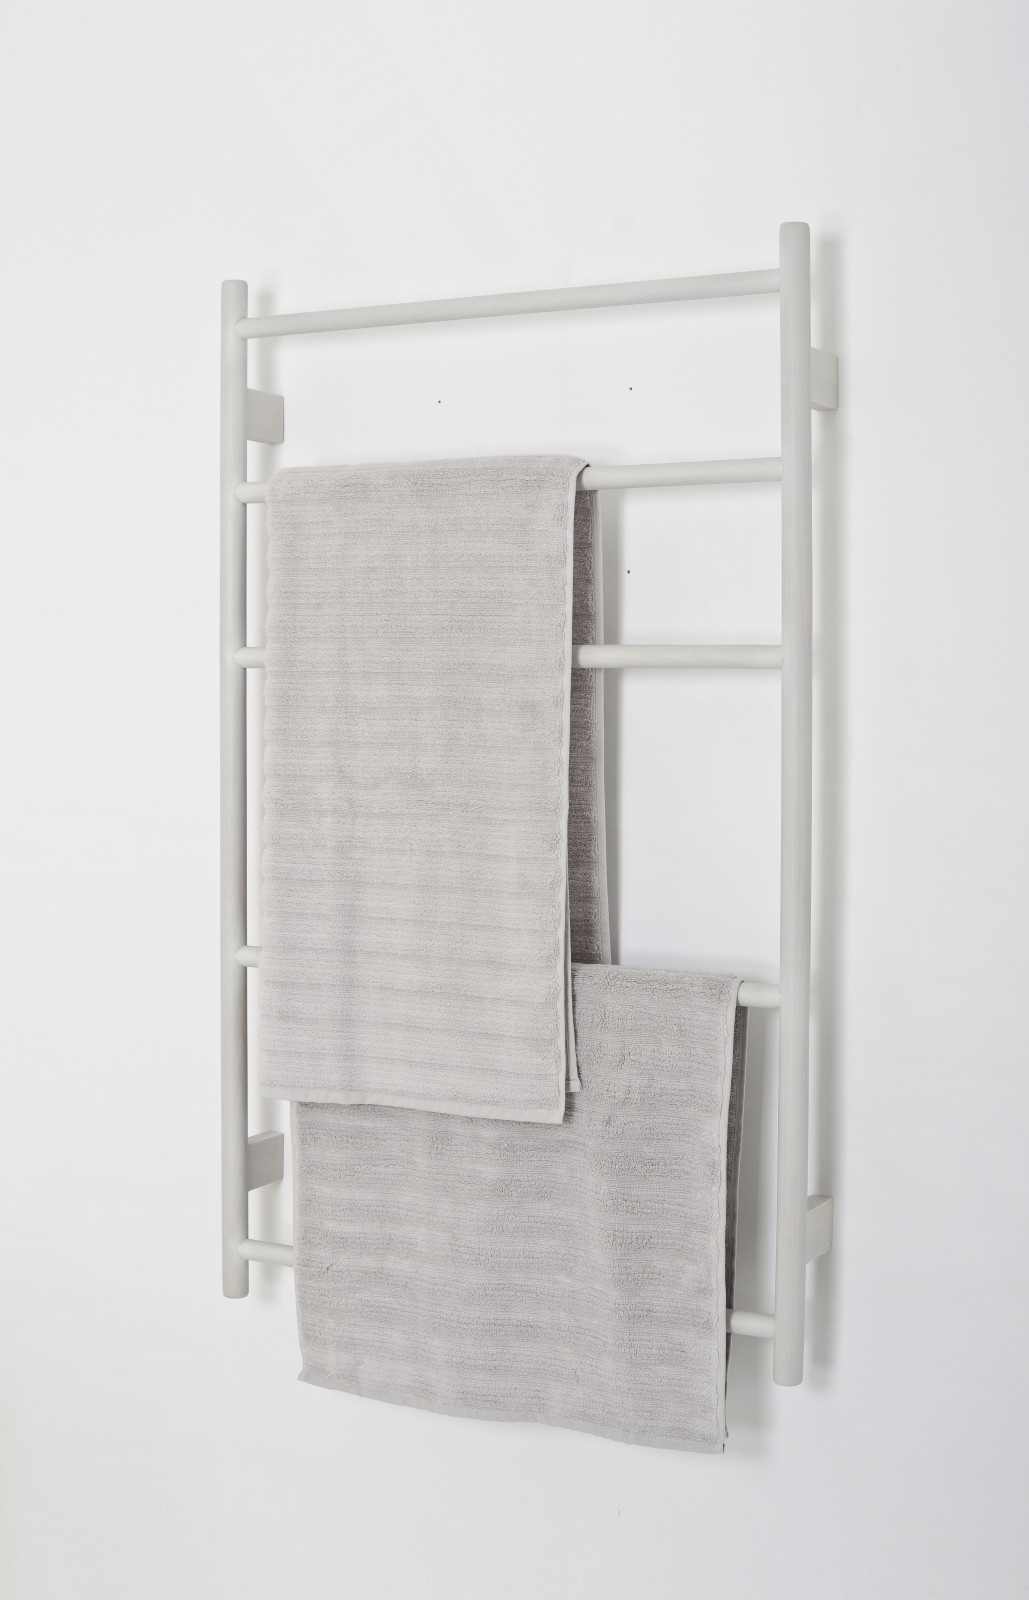 Towel Rail Wallbar Towel Rail Wallbar - Oyster White